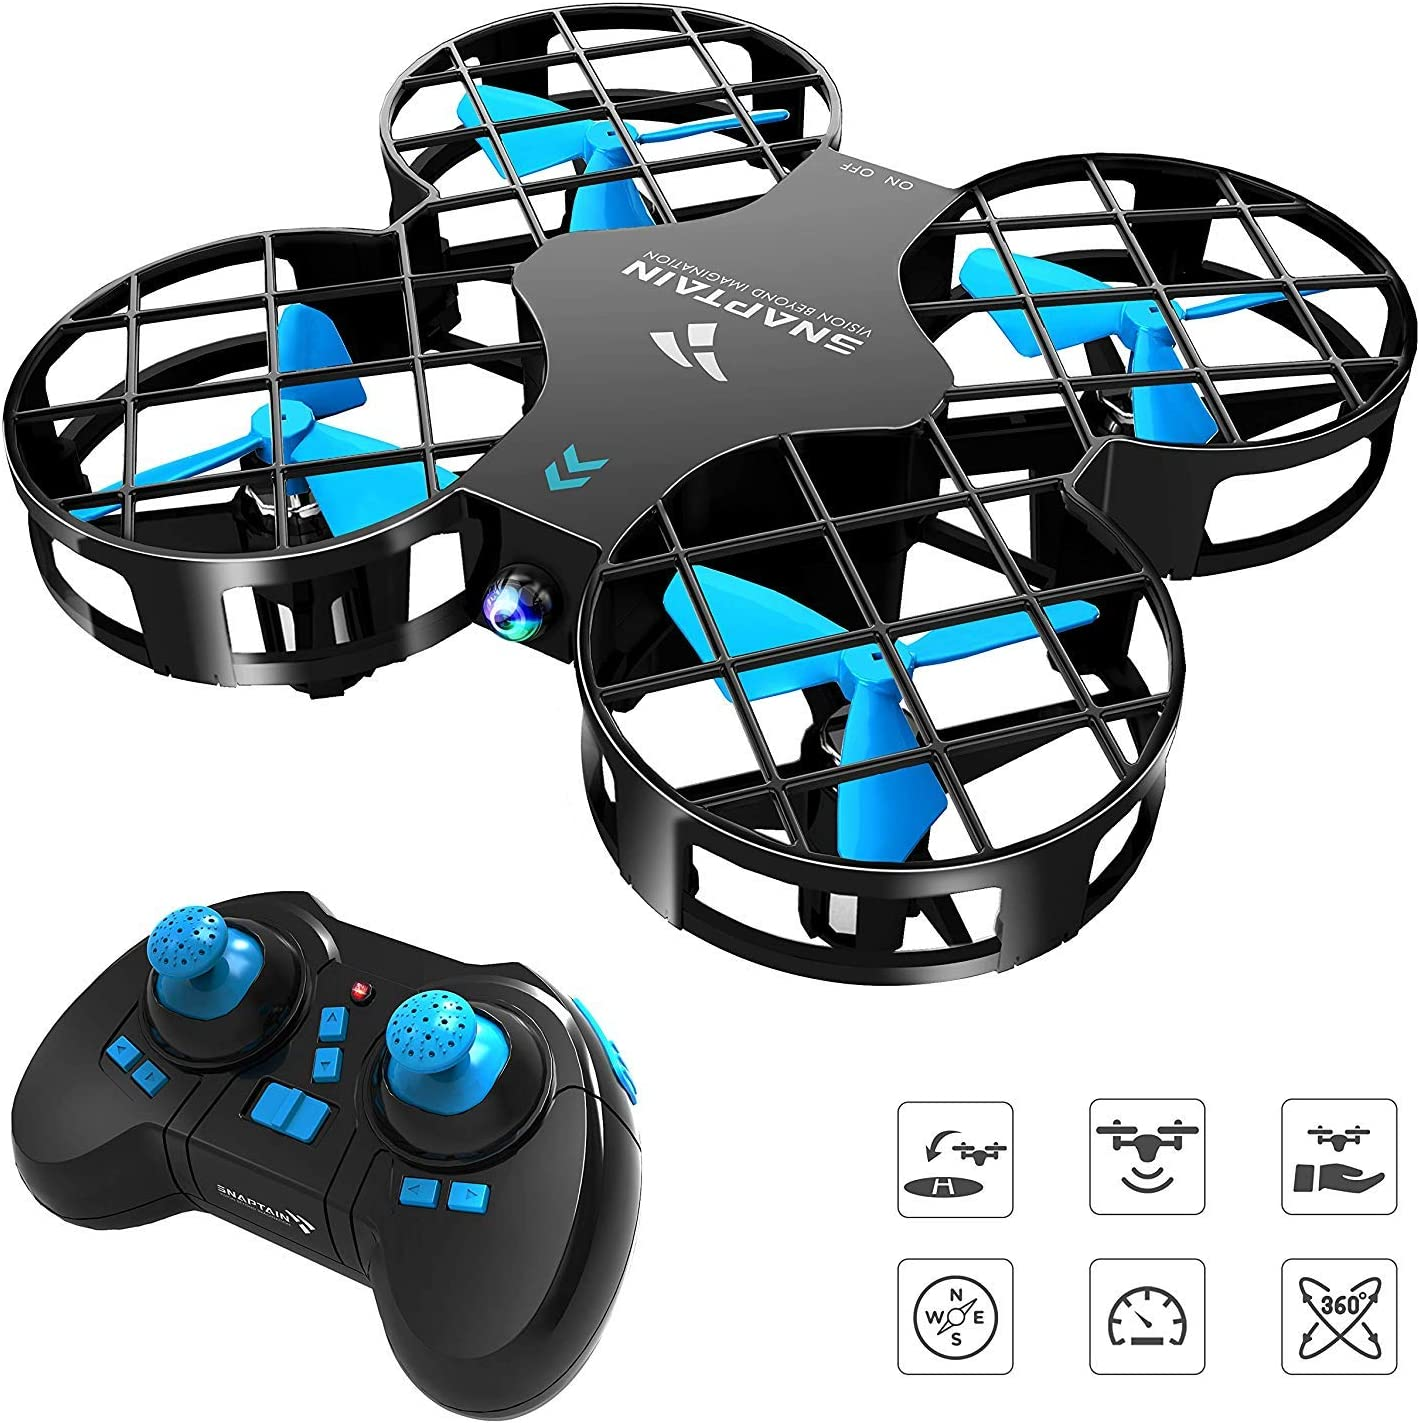 SNAPTAIN H823H Mini Drone for Kids, RC Nano Quadcopter w/Altitude Hold, Headless Mode, 3D Flips, One Key Return and Speed Adjustment: Toys & Games